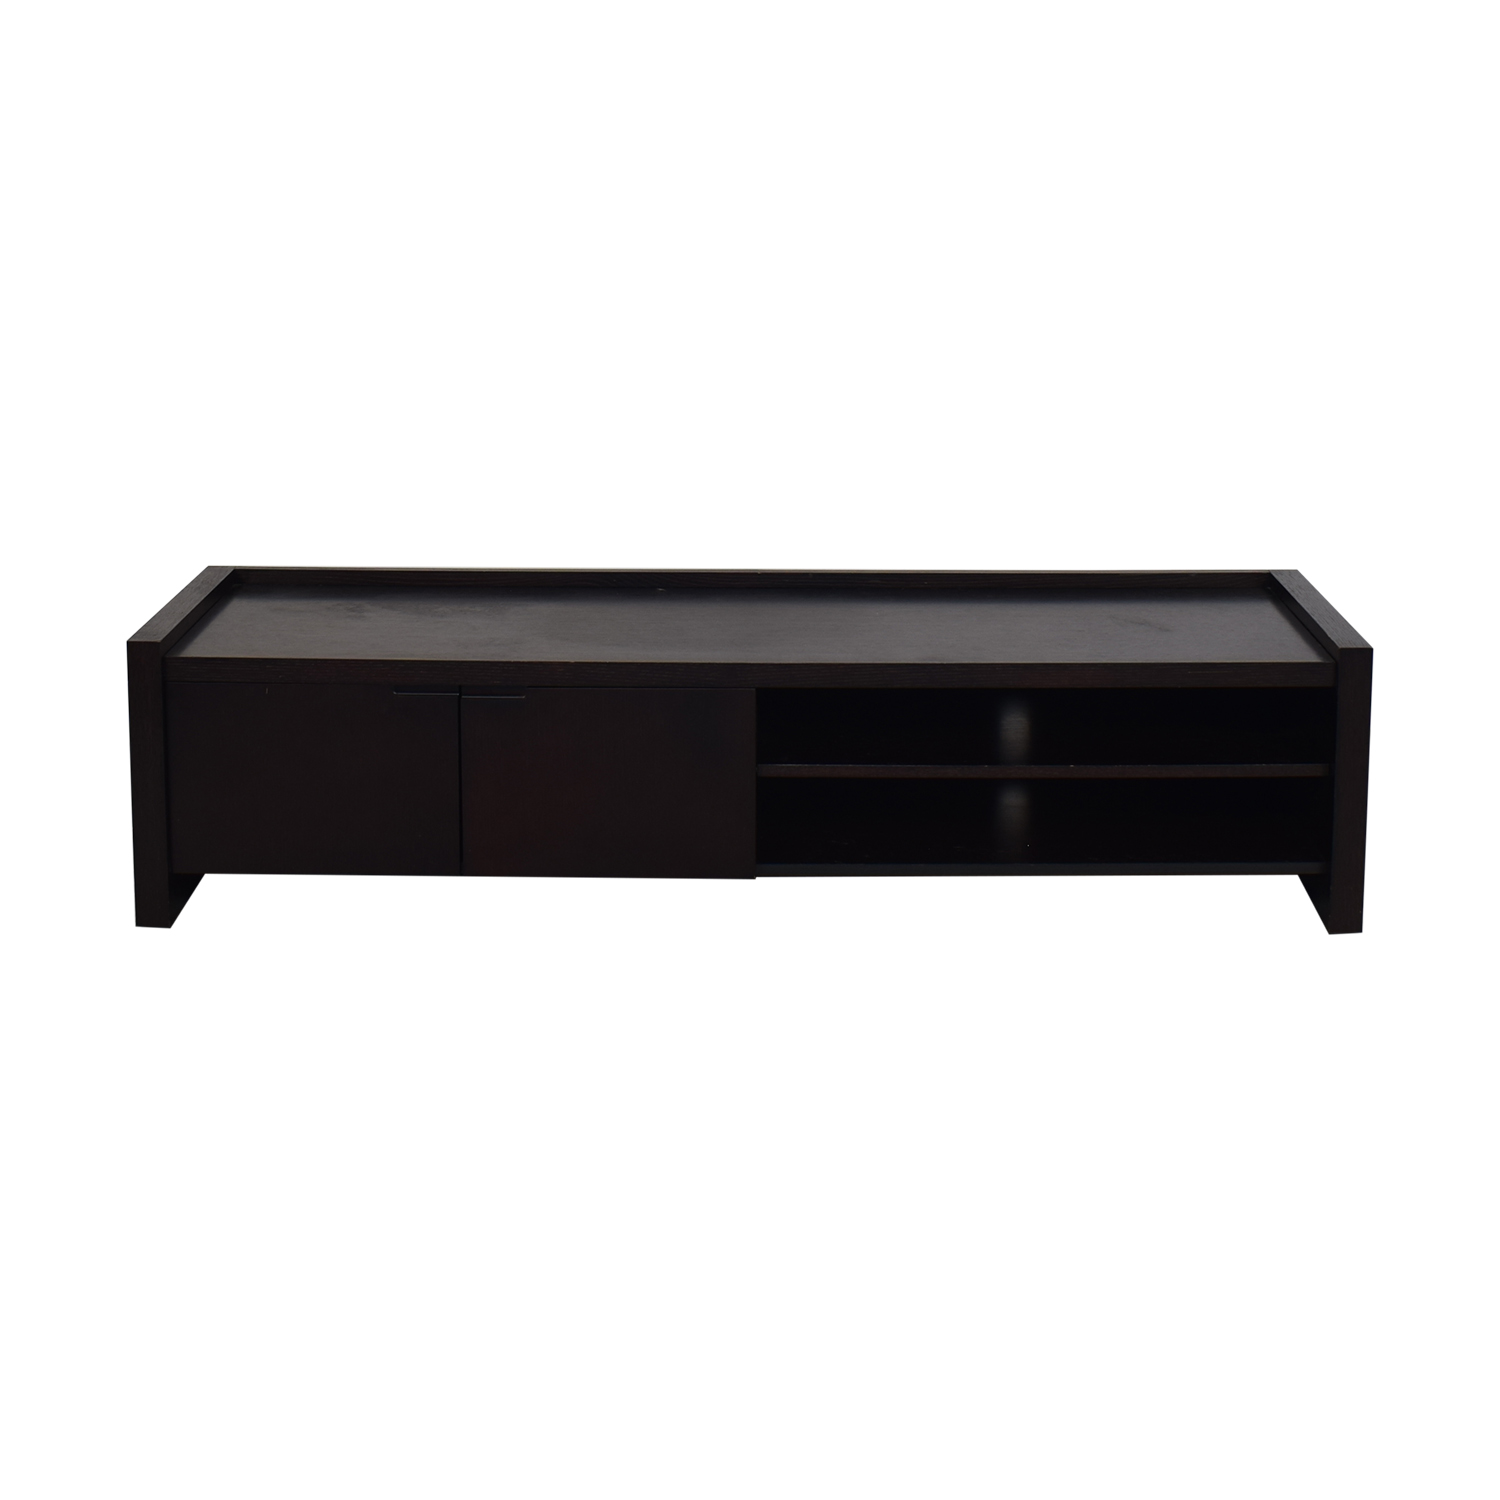 Crate & Barrel Crate & Barrel Media Console discount